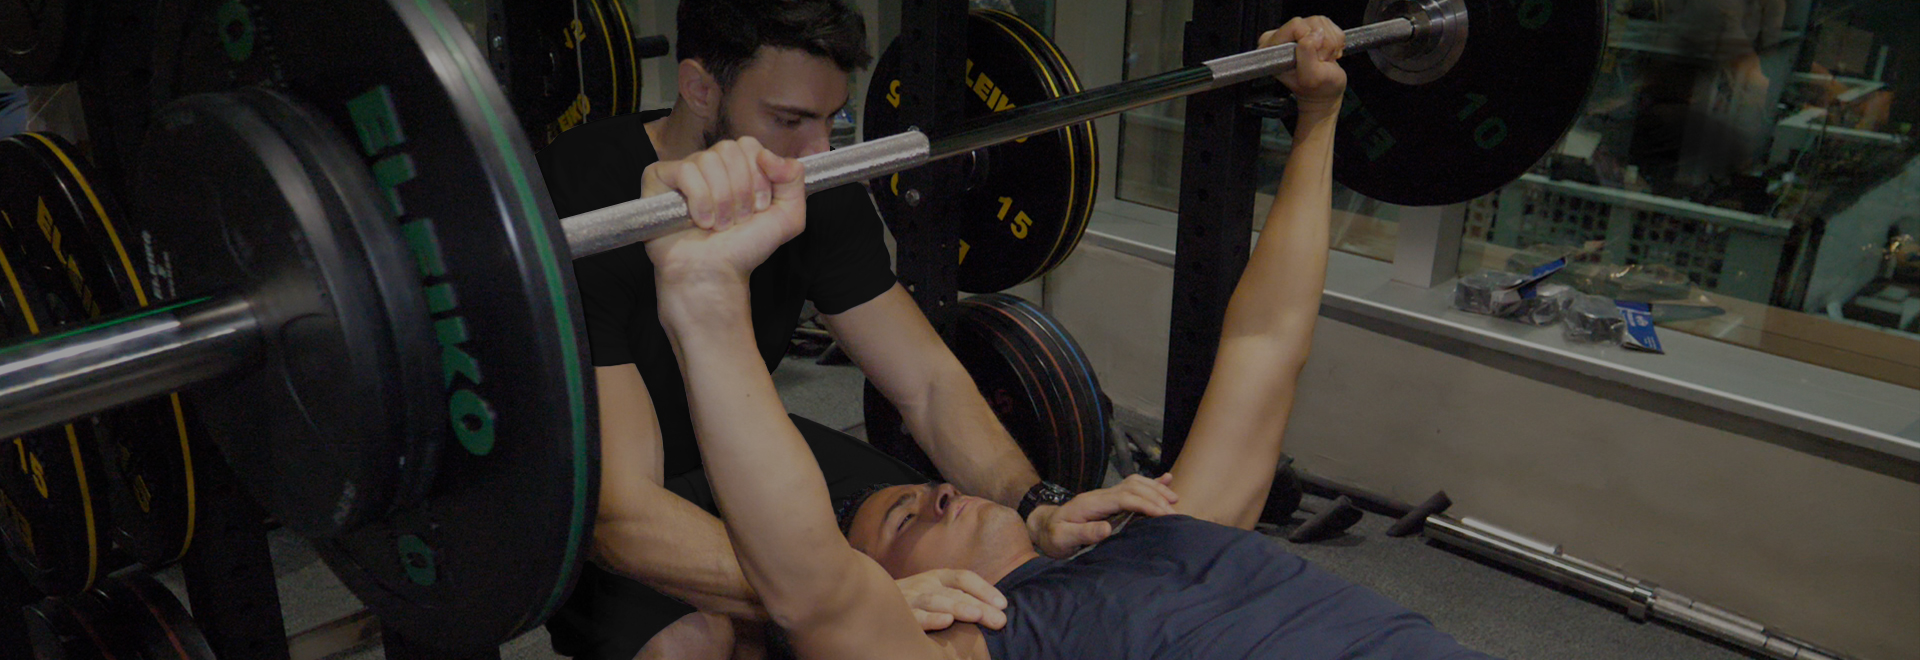 PERSONAL TRAINING - 1-oN-1 OR 2-ON-1